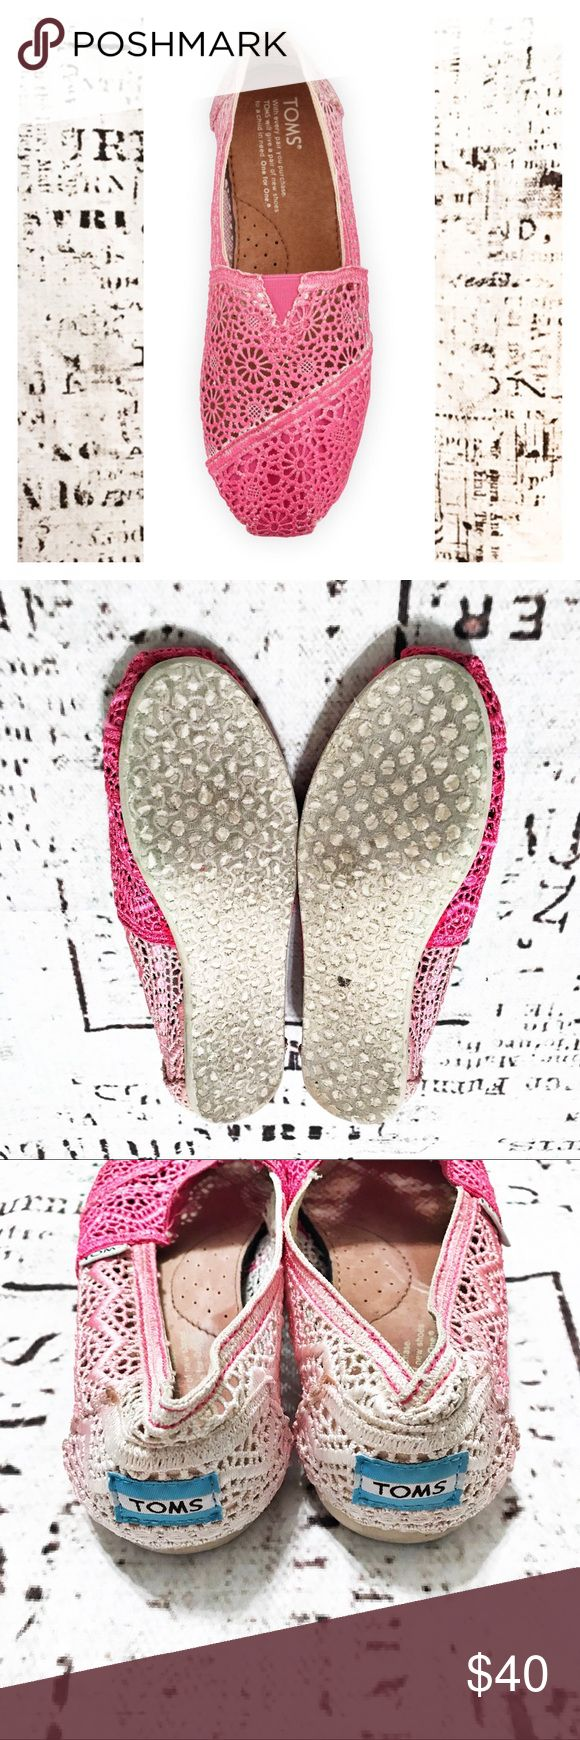 Toms Crochet Ombré Slip Ons Fuschia Pink Cream These Toms are a beautiful open crochet pattern starting in a deep fuschia pink at the toe and fading to a soft cream at the heel. Shoes show signs of wear on the soles, but uppers are in excellent condition. Beautiful shoes! Toms Shoes Flats & Loafers